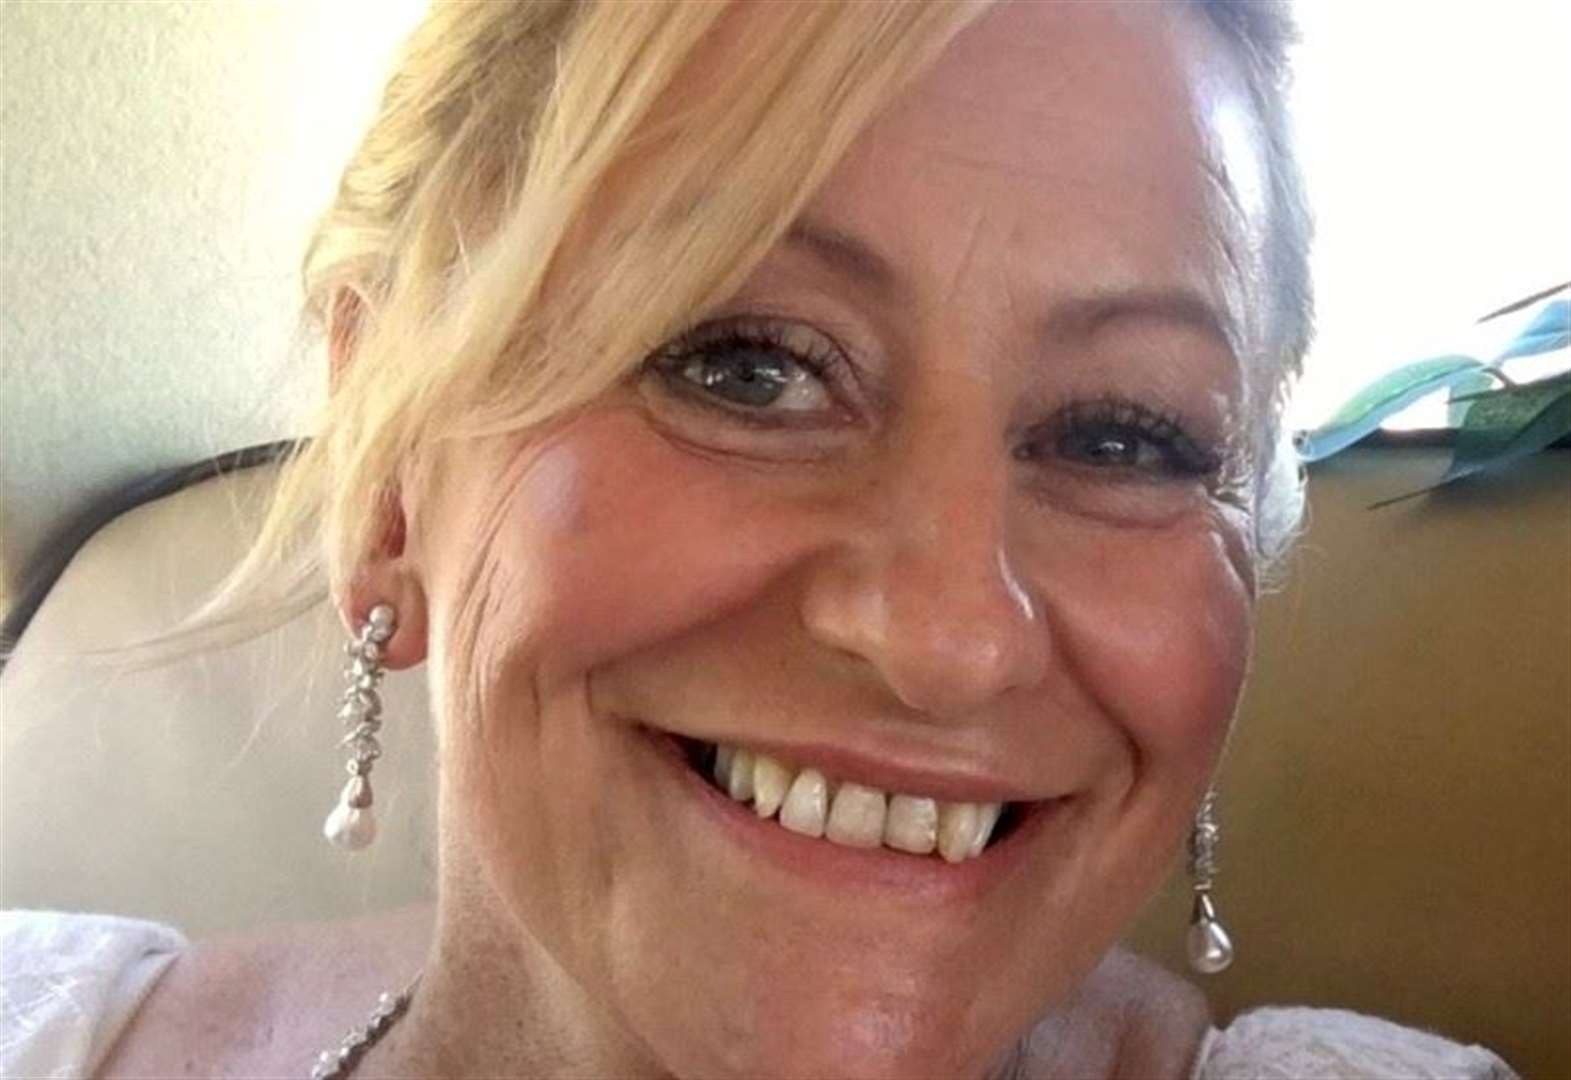 Man due in court charged with murder of Julia James